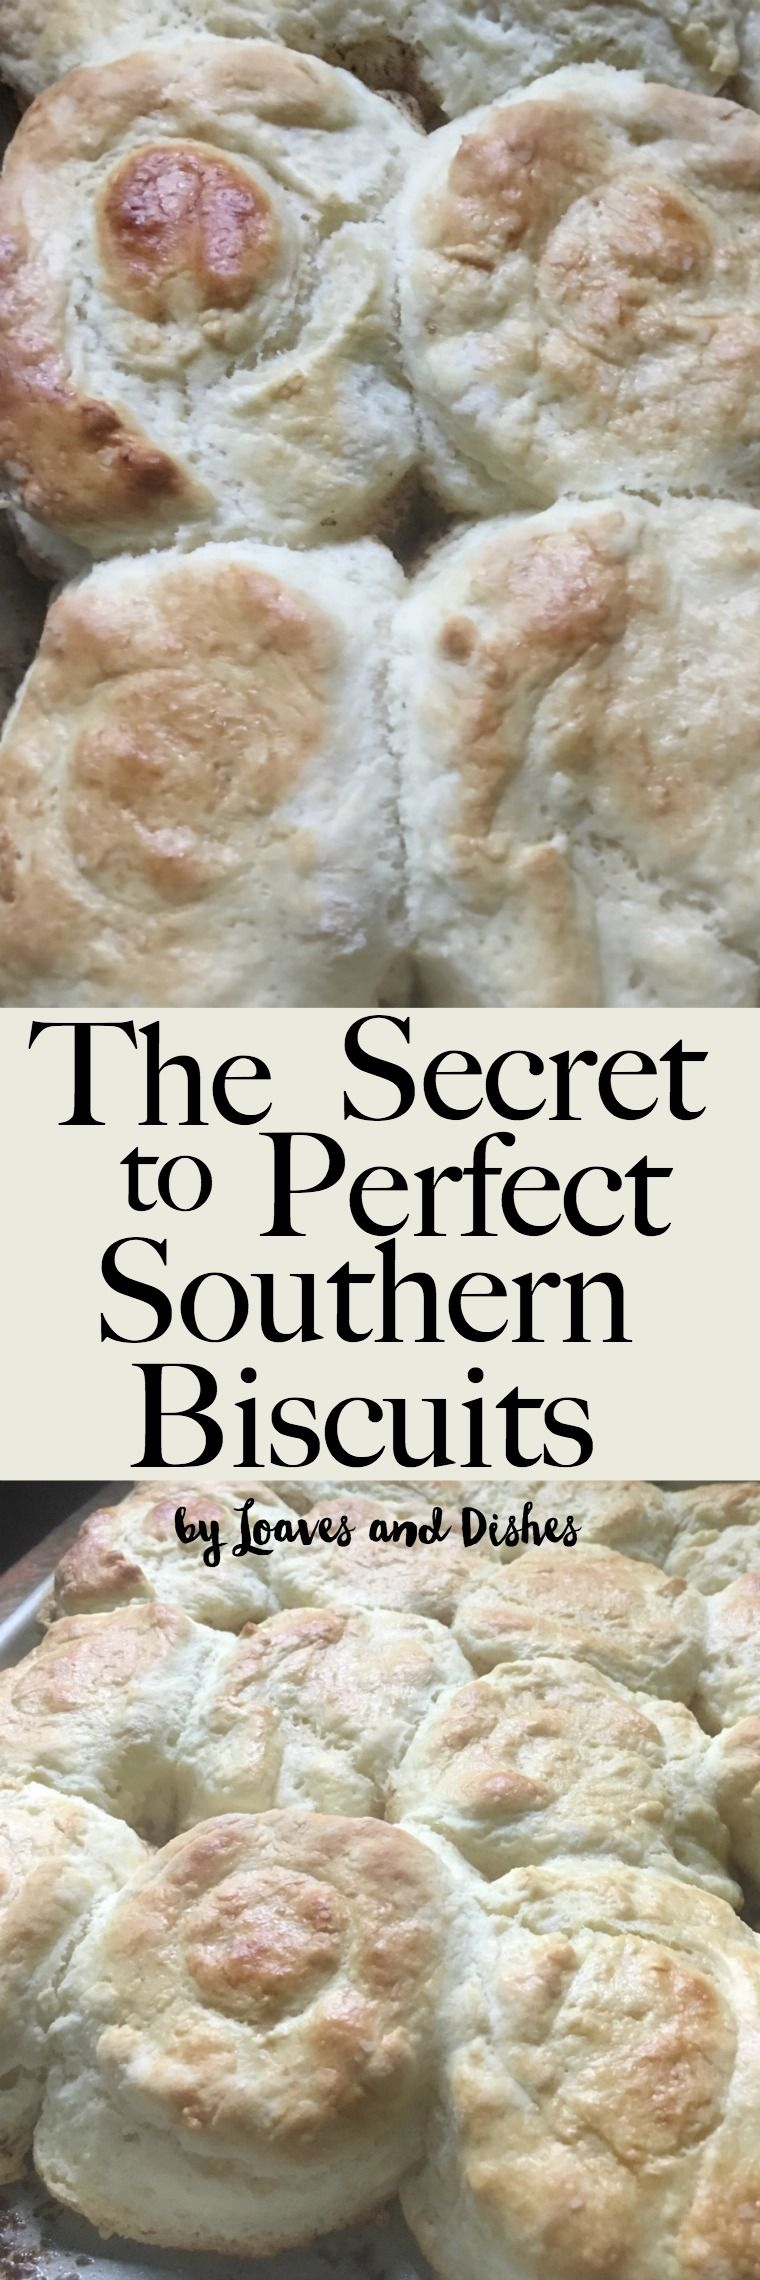 Homemade Easy Southern Biscuits Made With Buttermilk Like The Pioneer Woman Or Paula Deen Might Make Southern Biscuits Homemade Biscuits Recipe Food